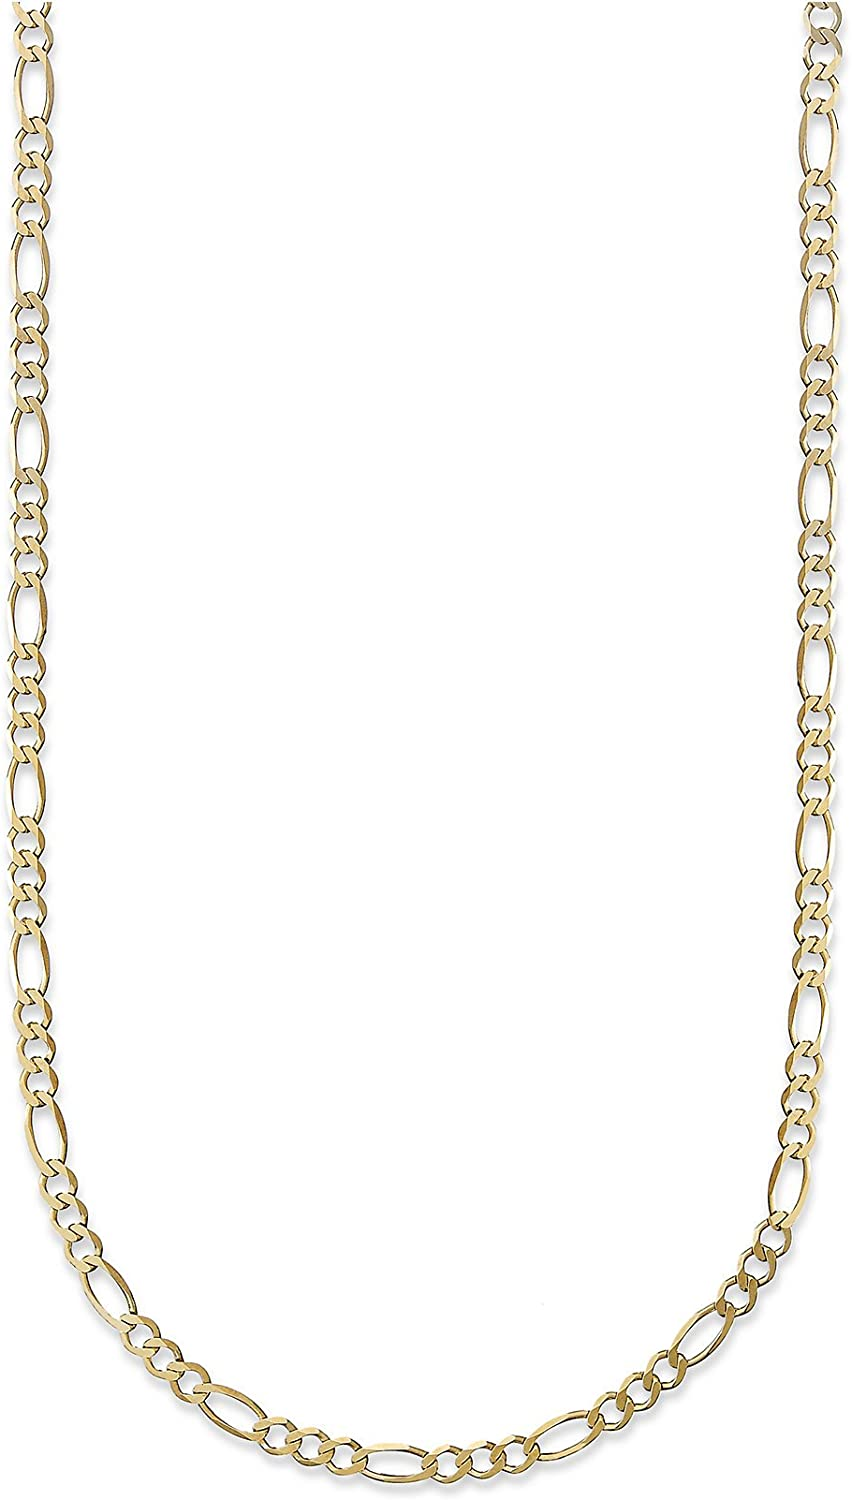 10K Yellow Gold 3.5mm Figaro 3+1 Link Chain Necklace - Multiple lengths available-20